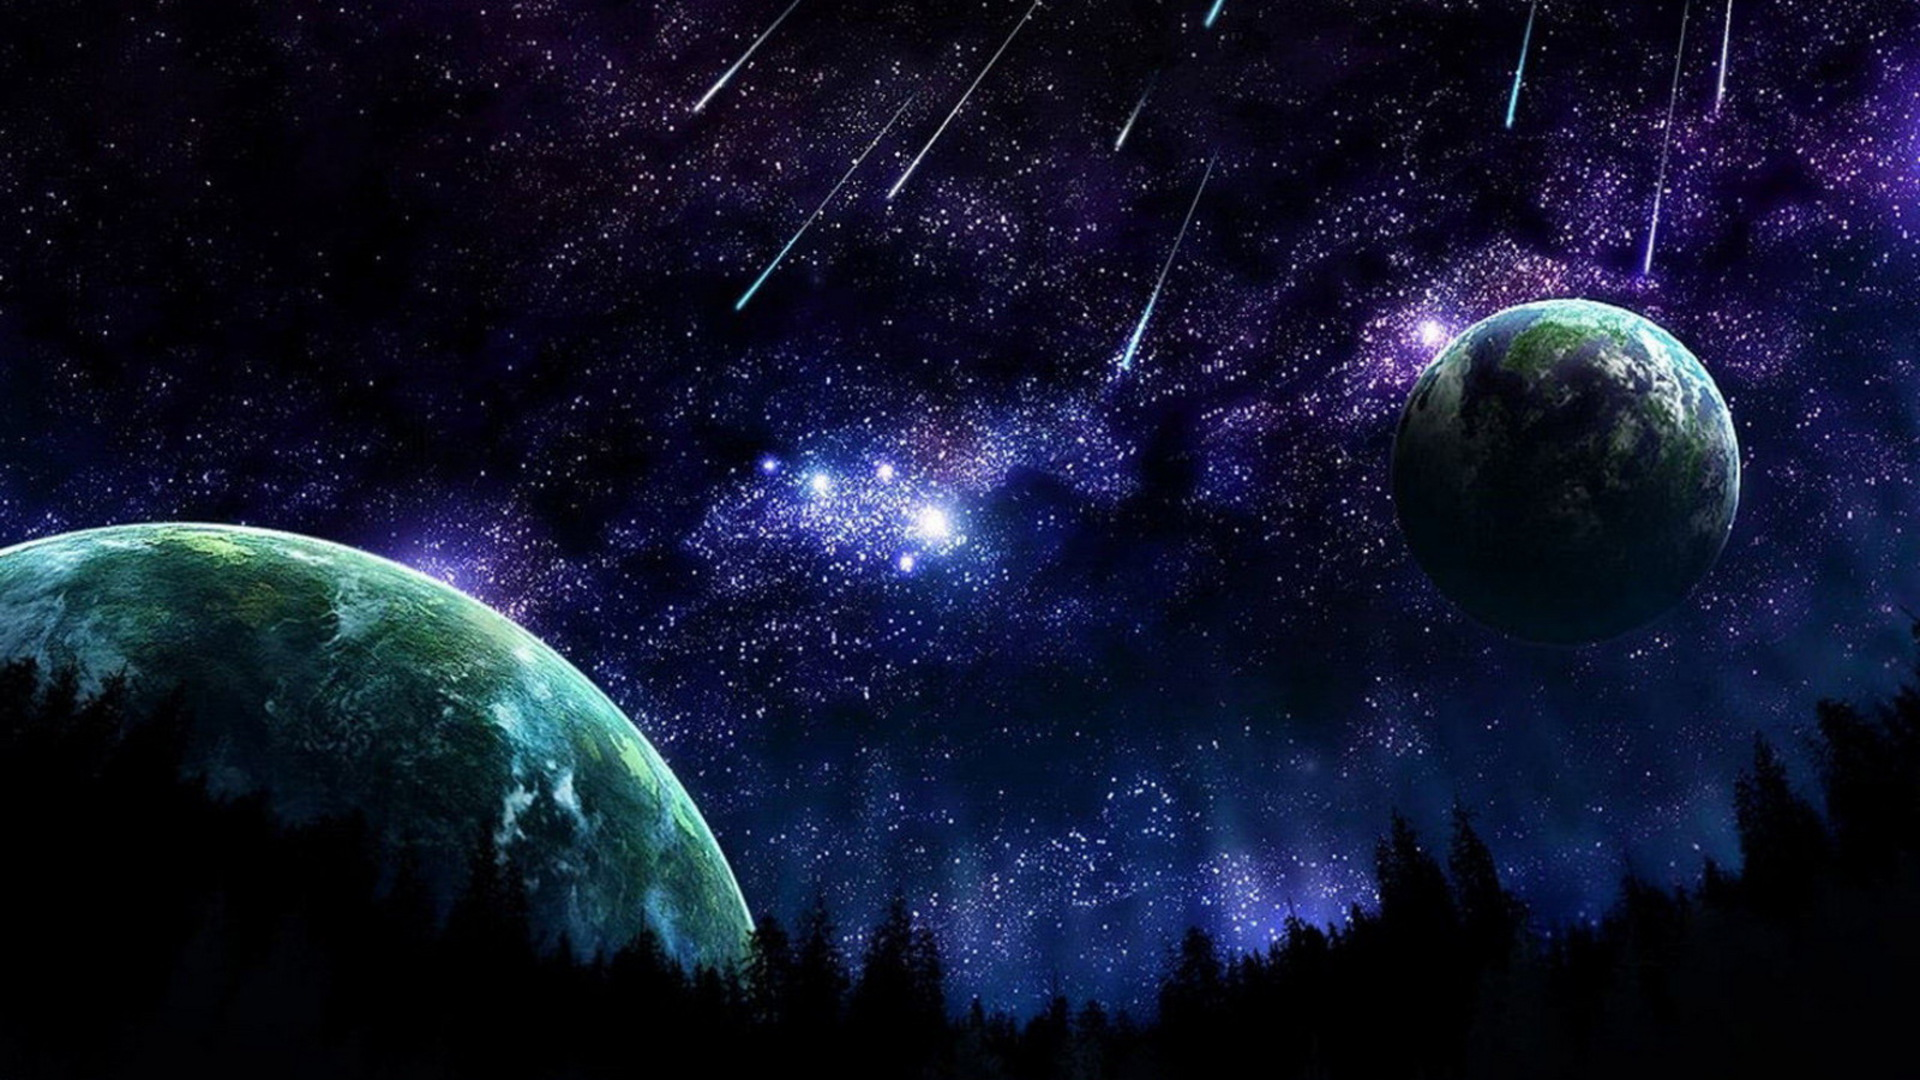 Outer Space Wallpaper 1920x1080 Outer, Space, Stars, Planets ...